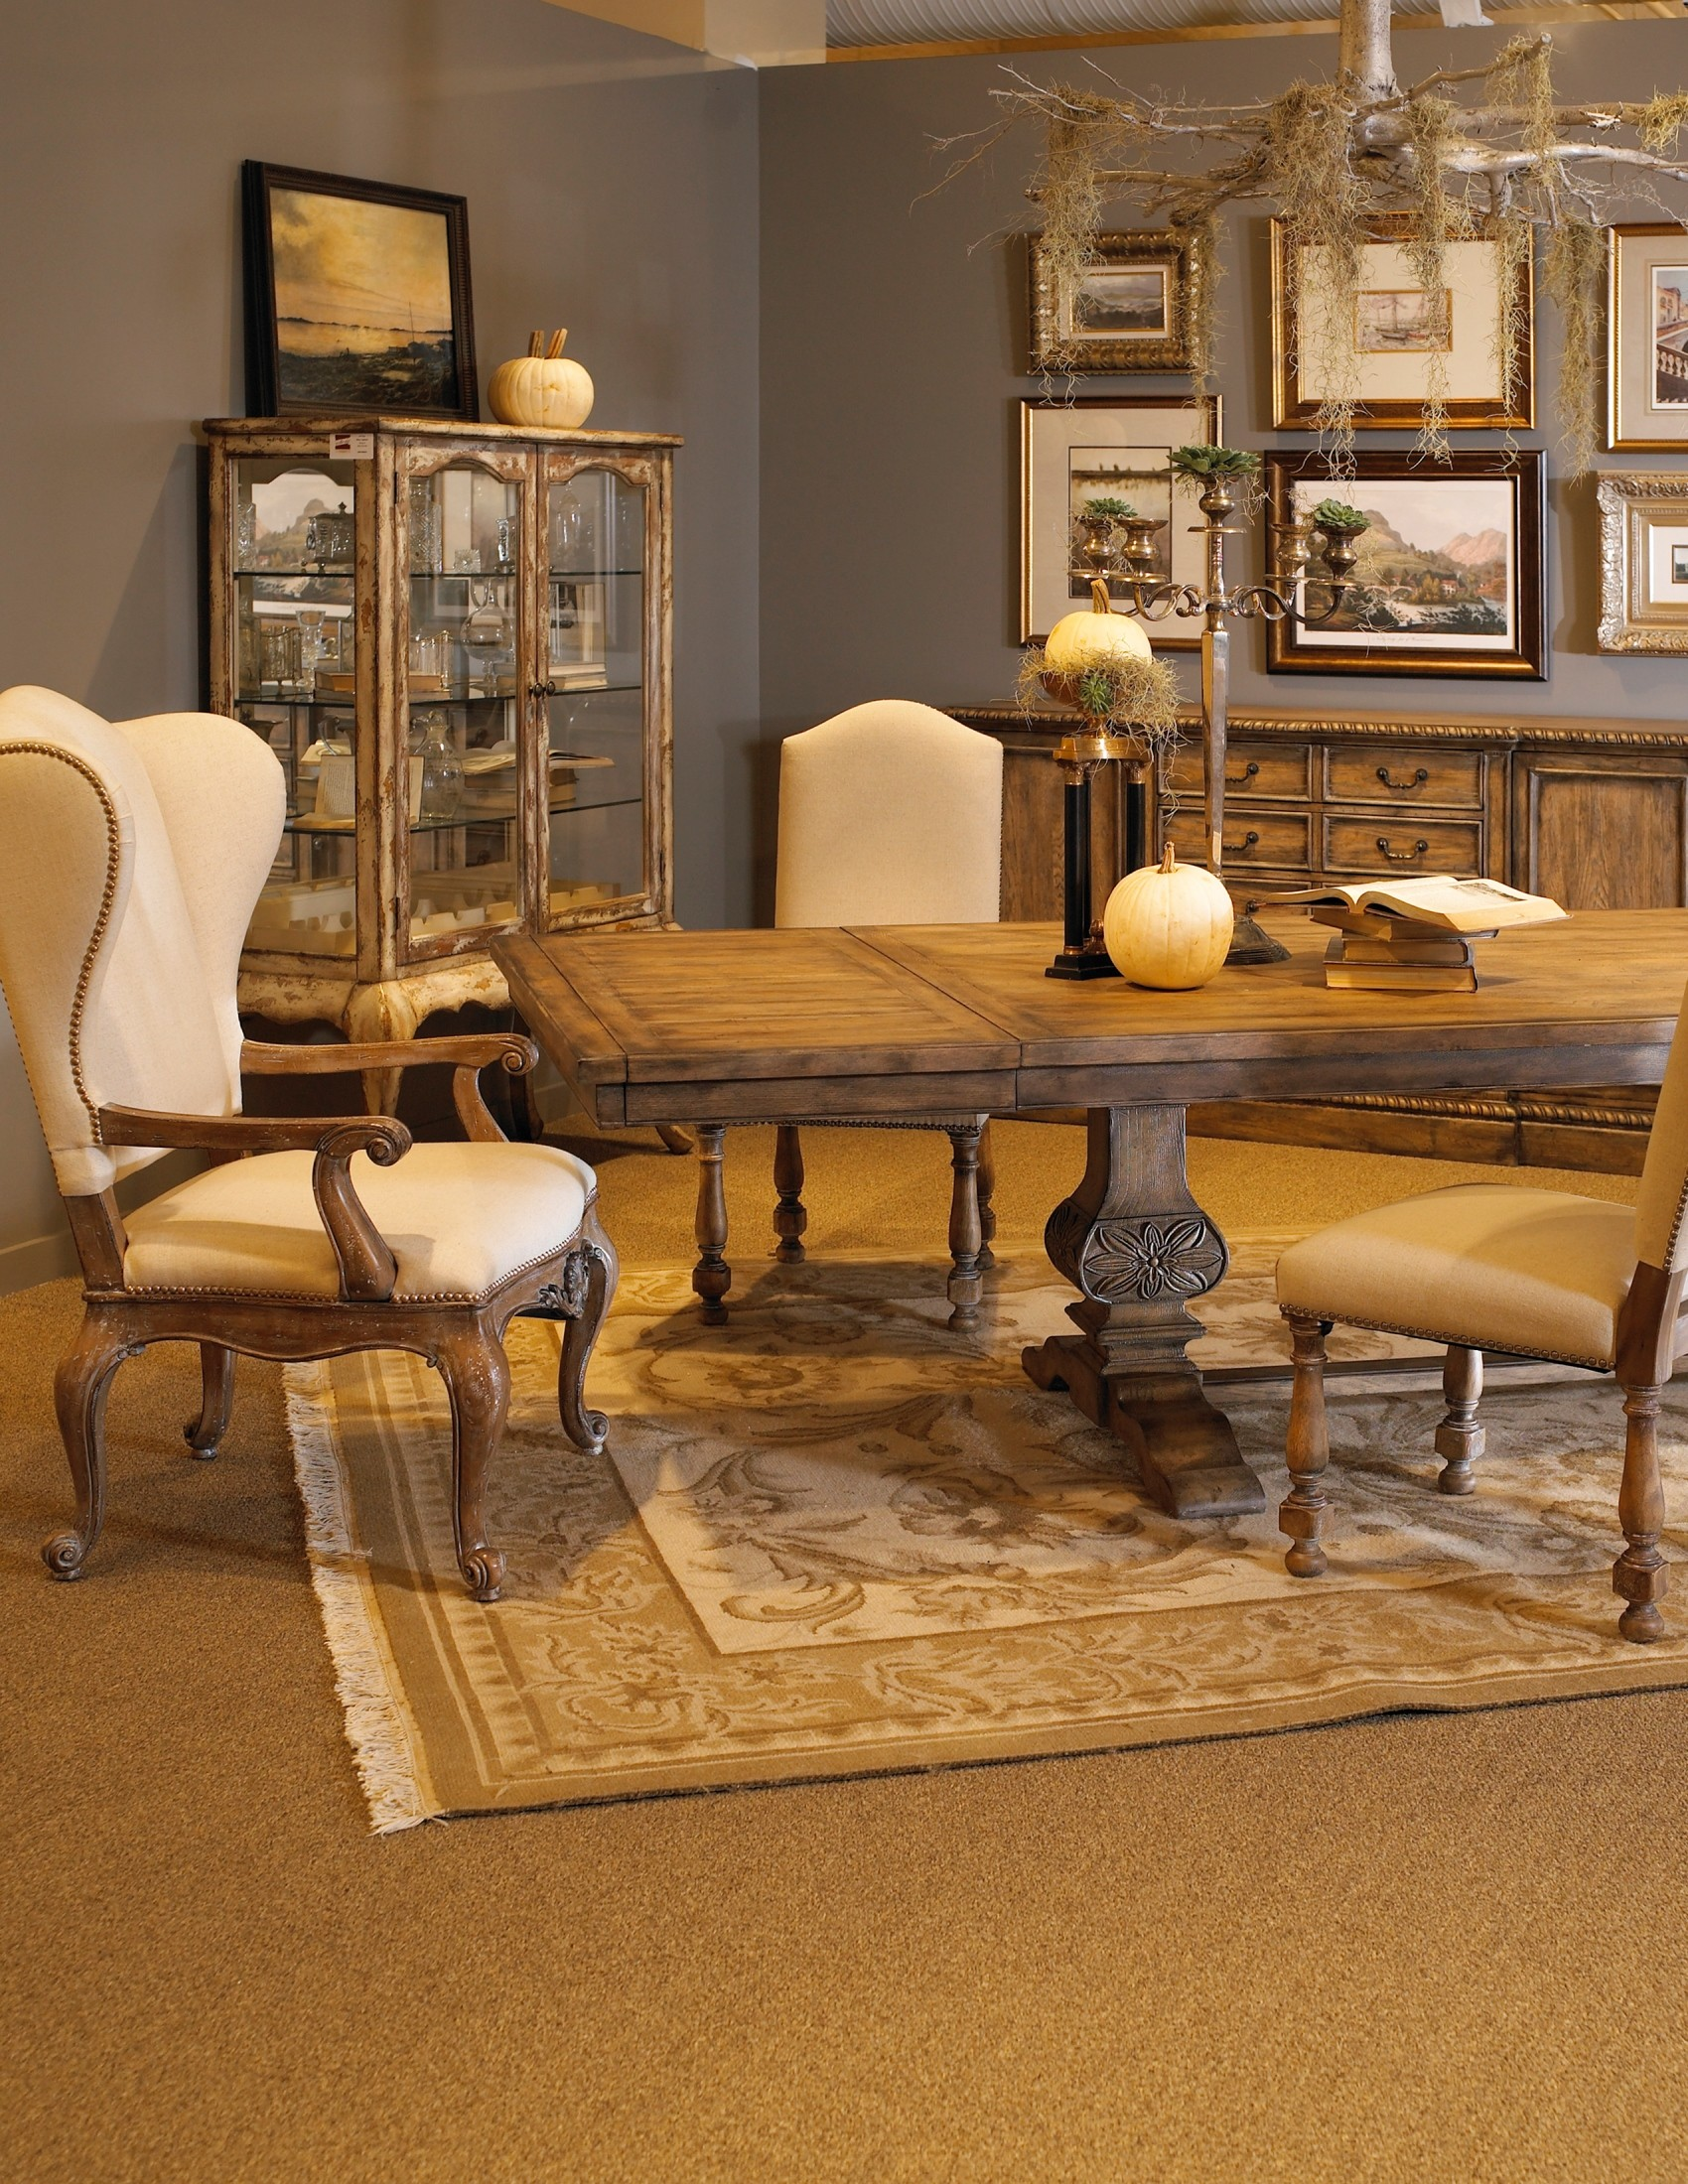 Accentrics home desdemona rectangular dining room set from pulaski 201005 coleman furniture - Pulaski dining room ...